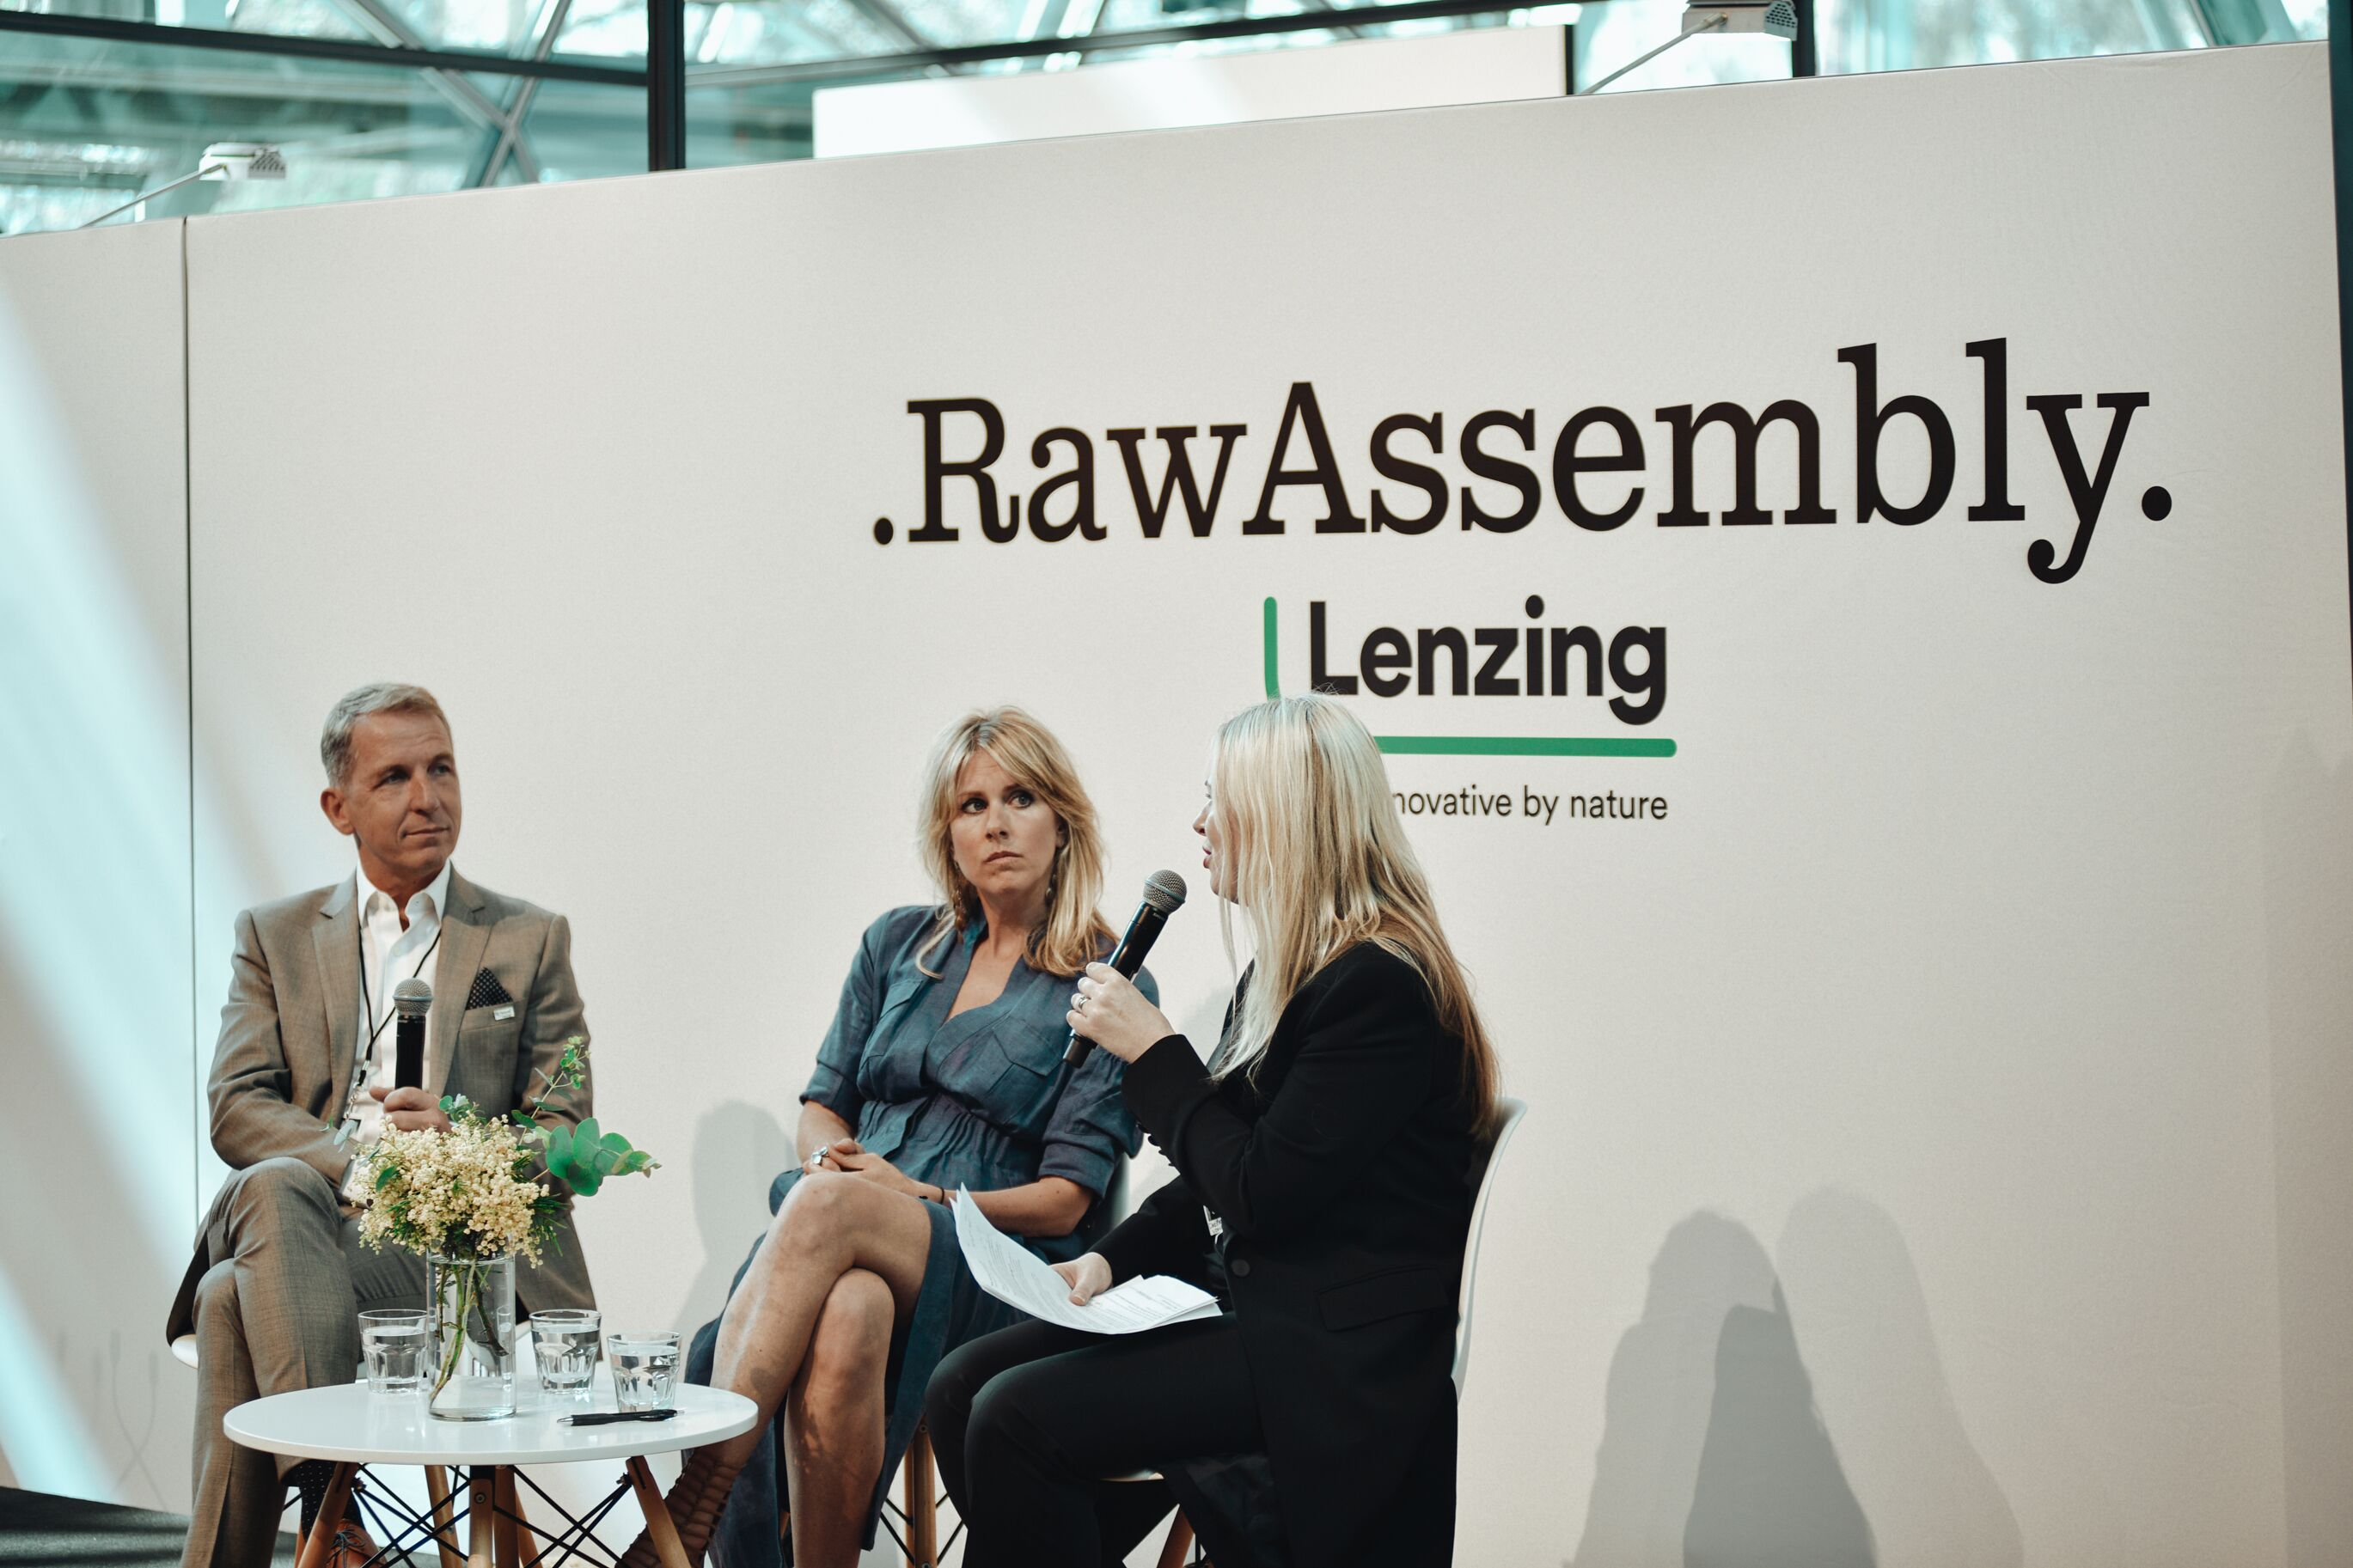 Panel discussion led by Clare Press. Image: Raw Assembly.